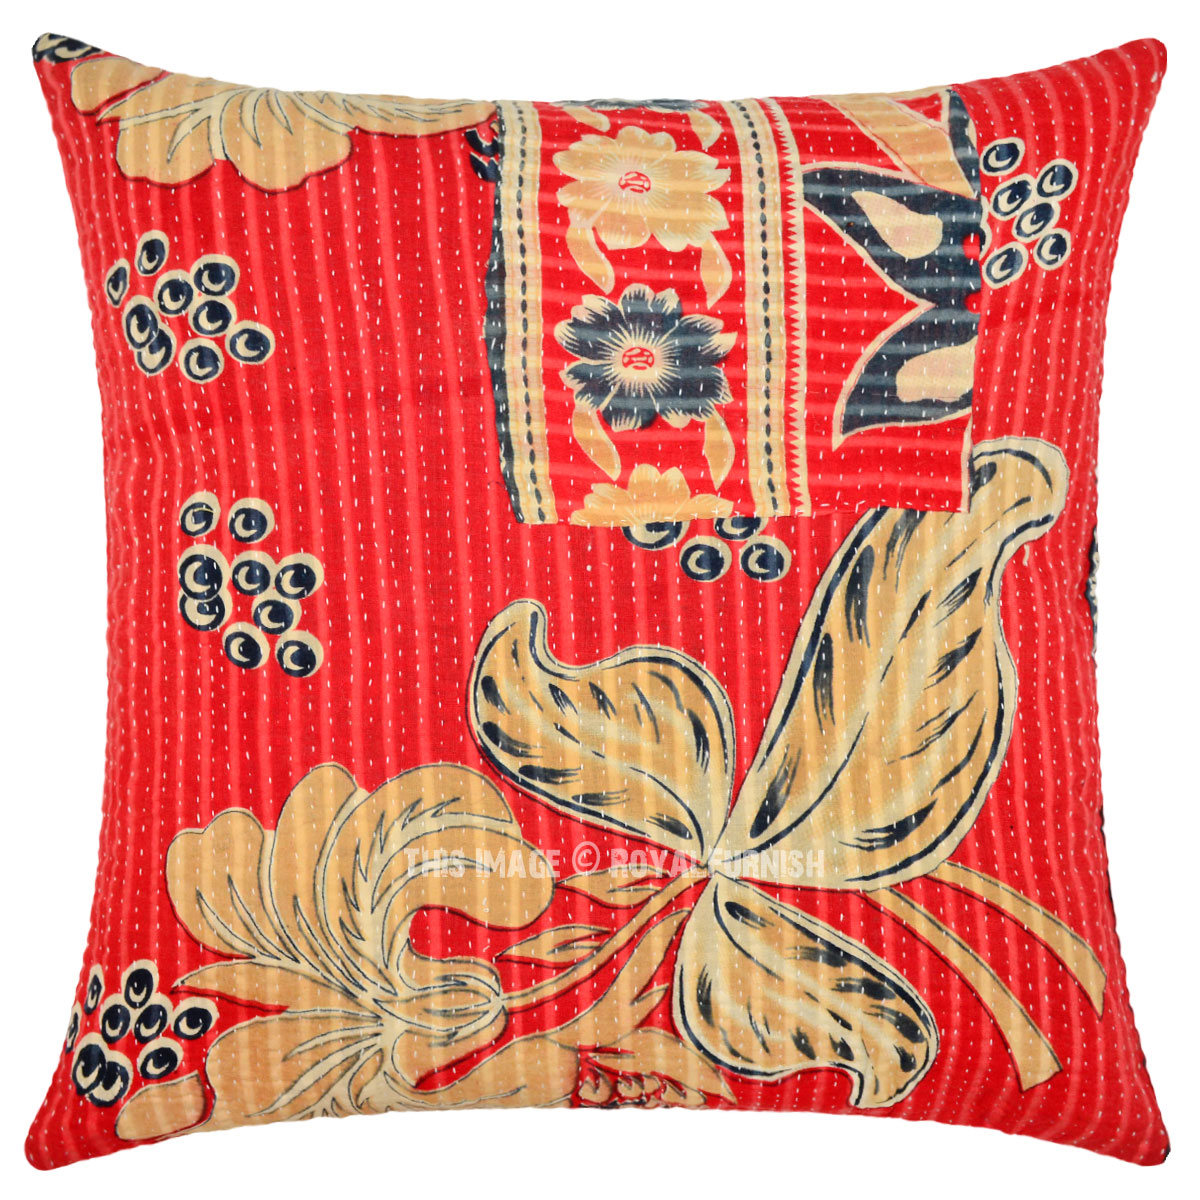 Vintage Throw Pillow Covers 18x18 : 18X18 Red Multi Decorative Old Vintage Kantha Throw Pillow Cover - RoyalFurnish.com